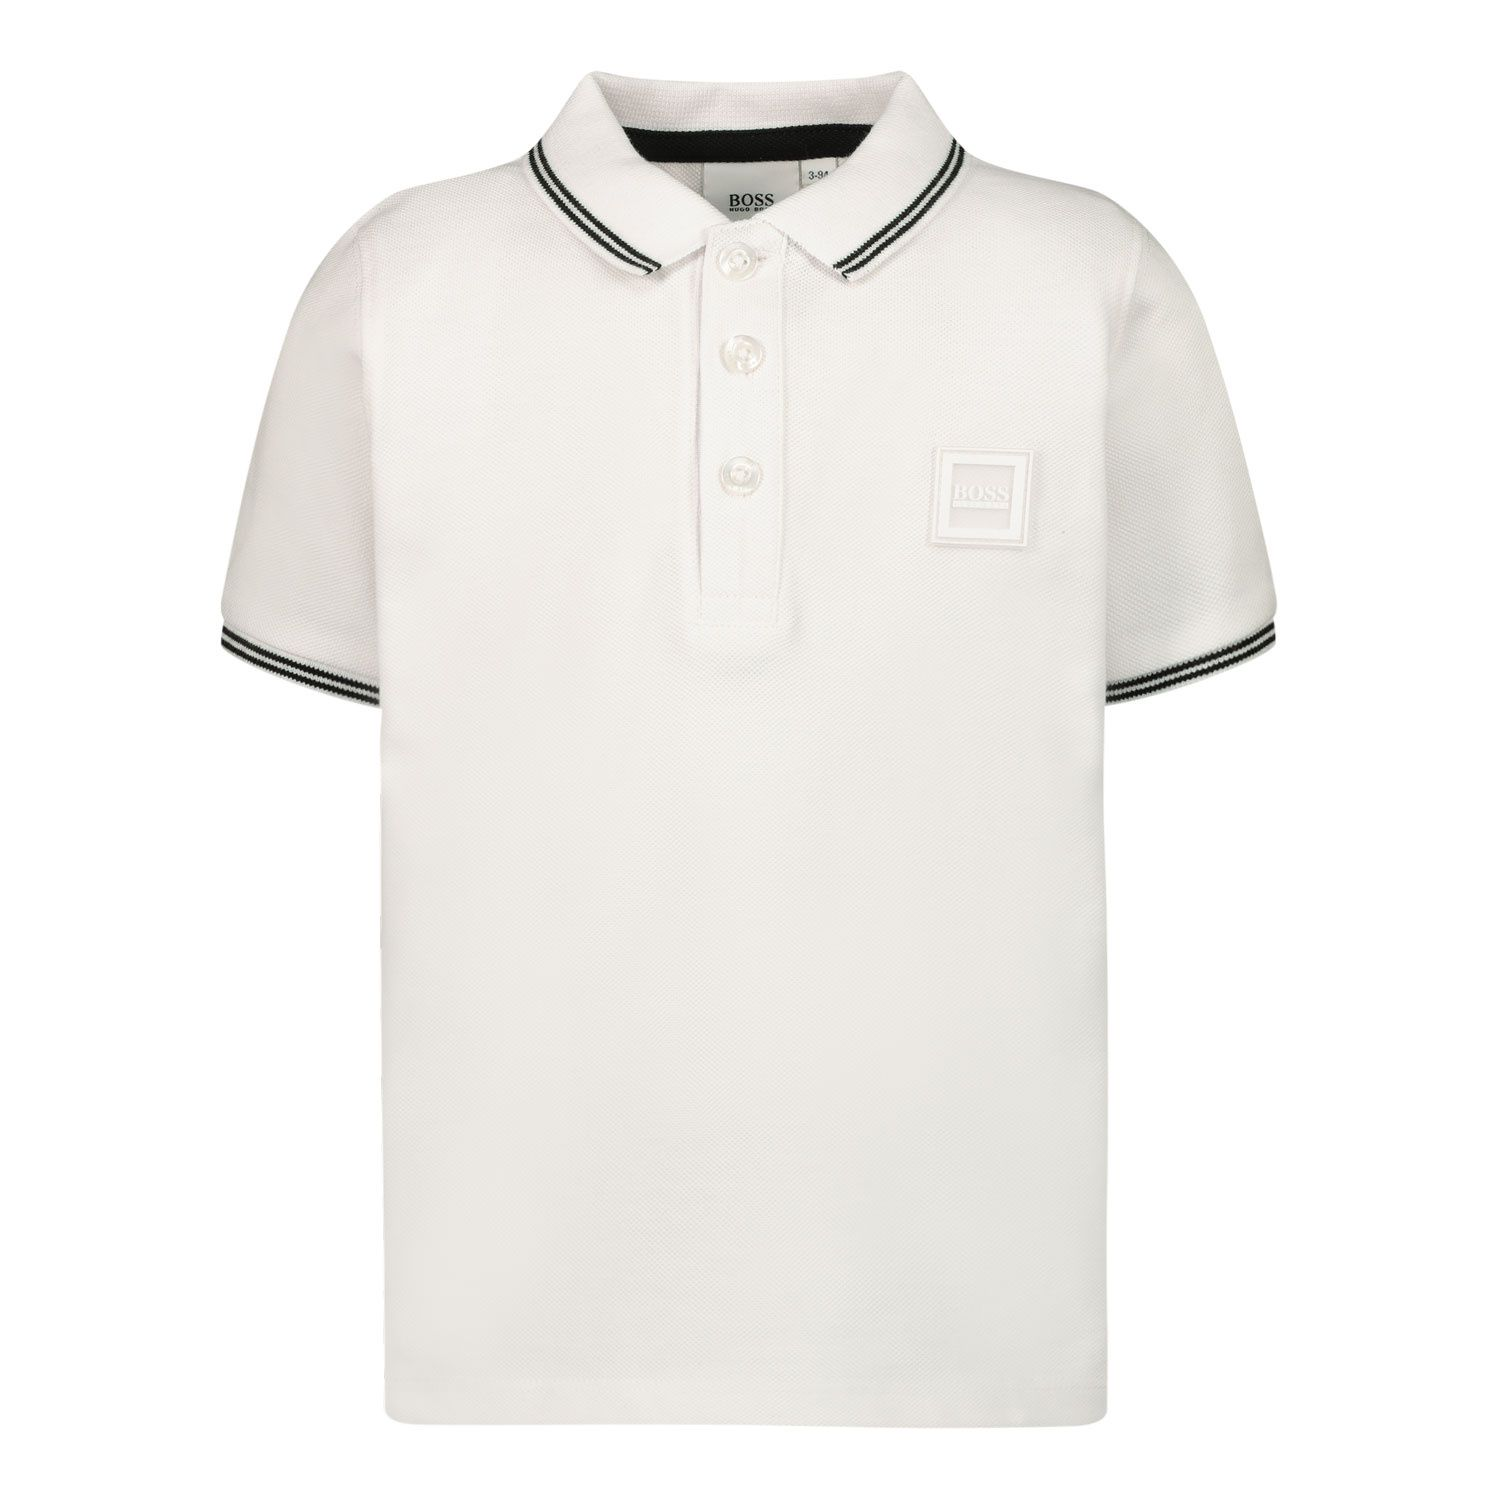 Picture of Boss J05846 baby poloshirt white